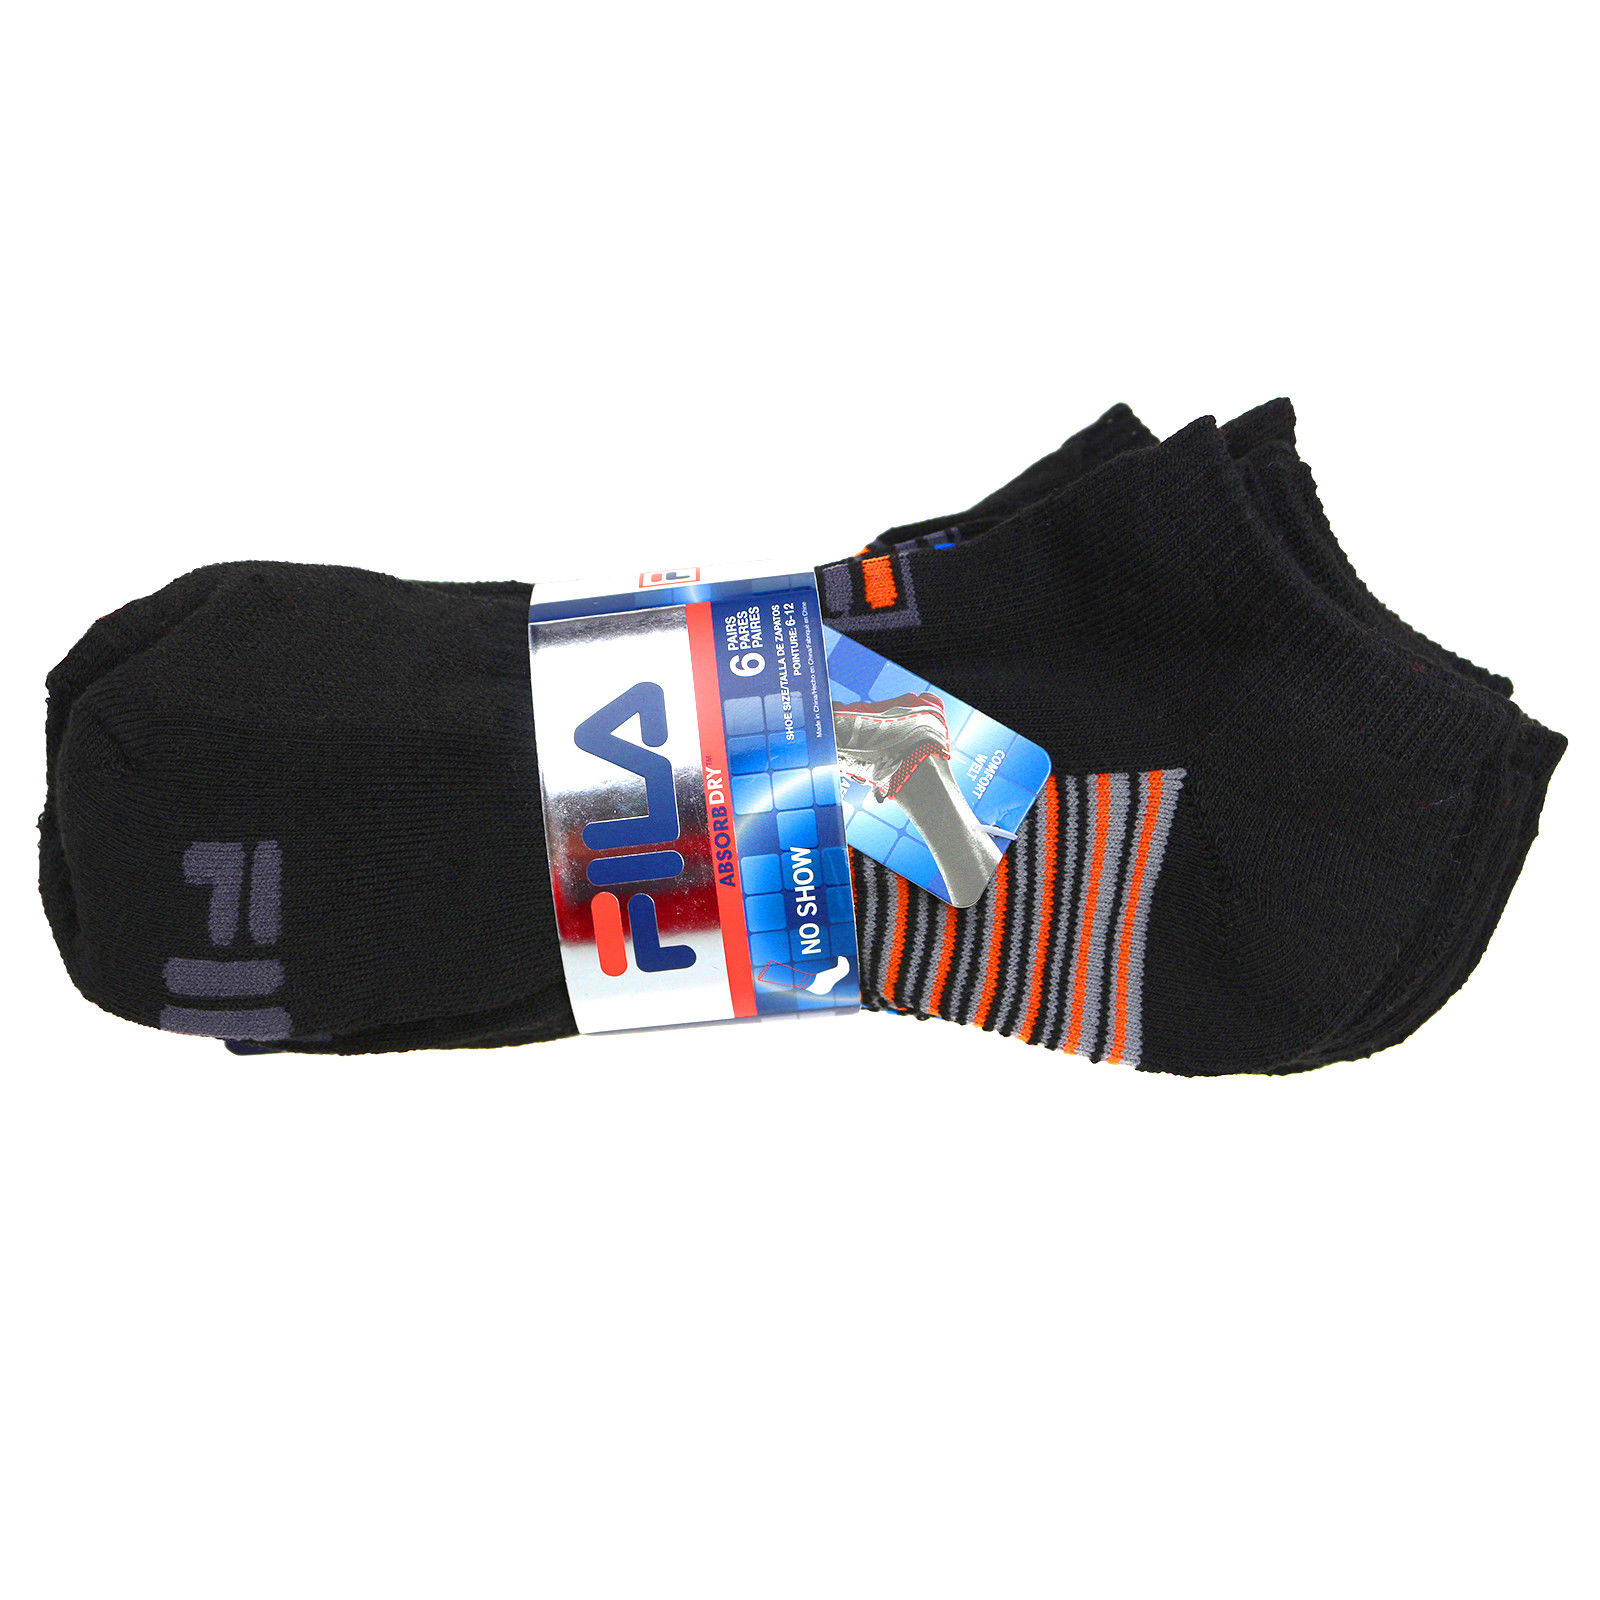 FILA-Men-039-s-6-Pack-Classic-Sport-Athletic-Gym-Moisture-Control-Absorb-Dry-Socks miniature 3